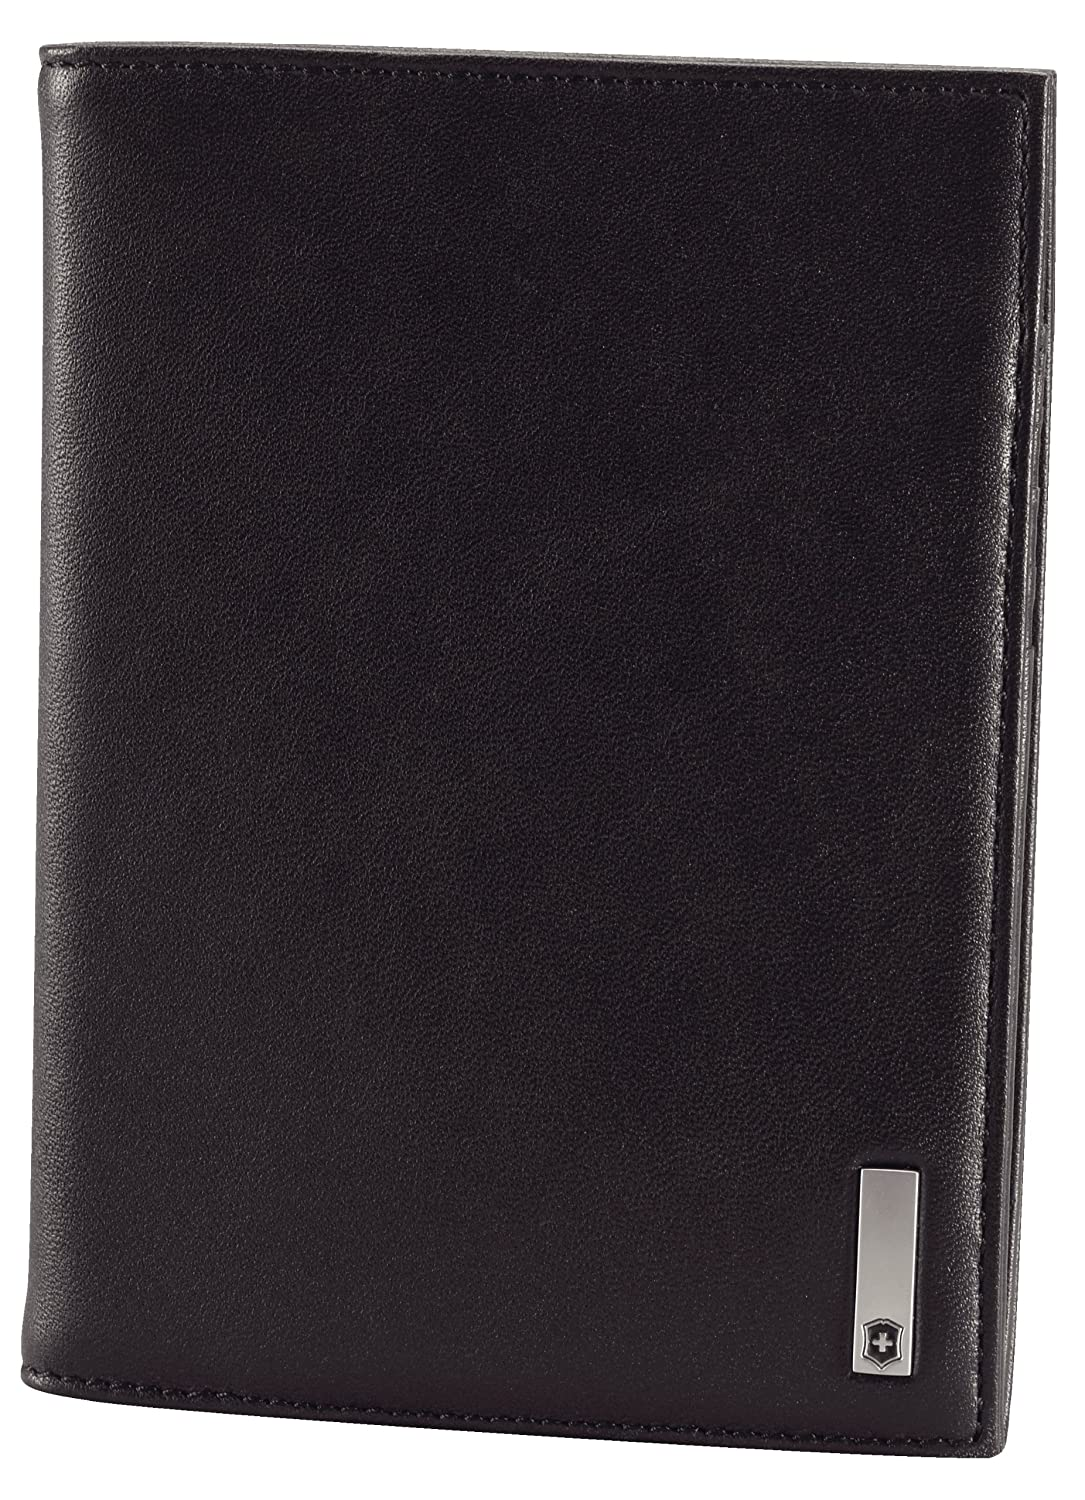 Victorinox Men's Altius 3.0 Oslo Leather Passport Cover Black One Size Victorinox - TRG Group 301633